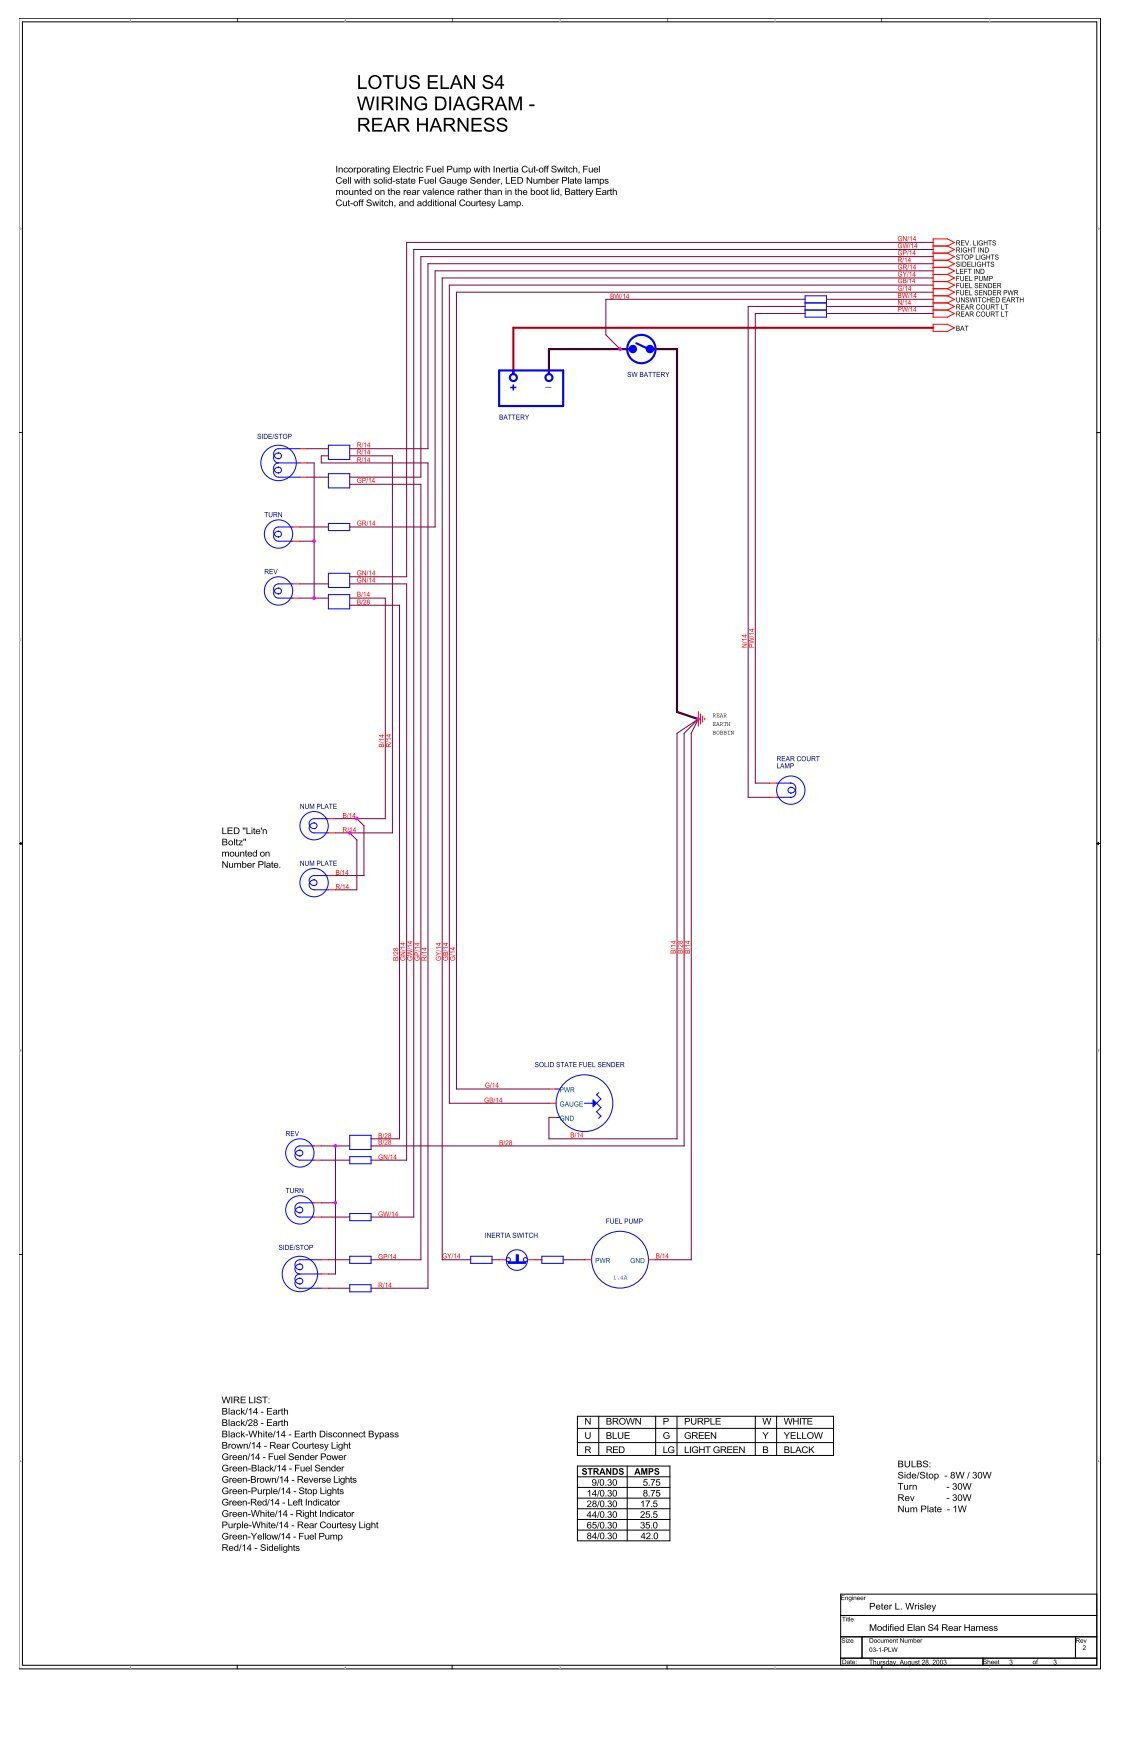 Daewoo Nubira Wiring Diagram Library Mazda Cx 9 Electrical Stereo